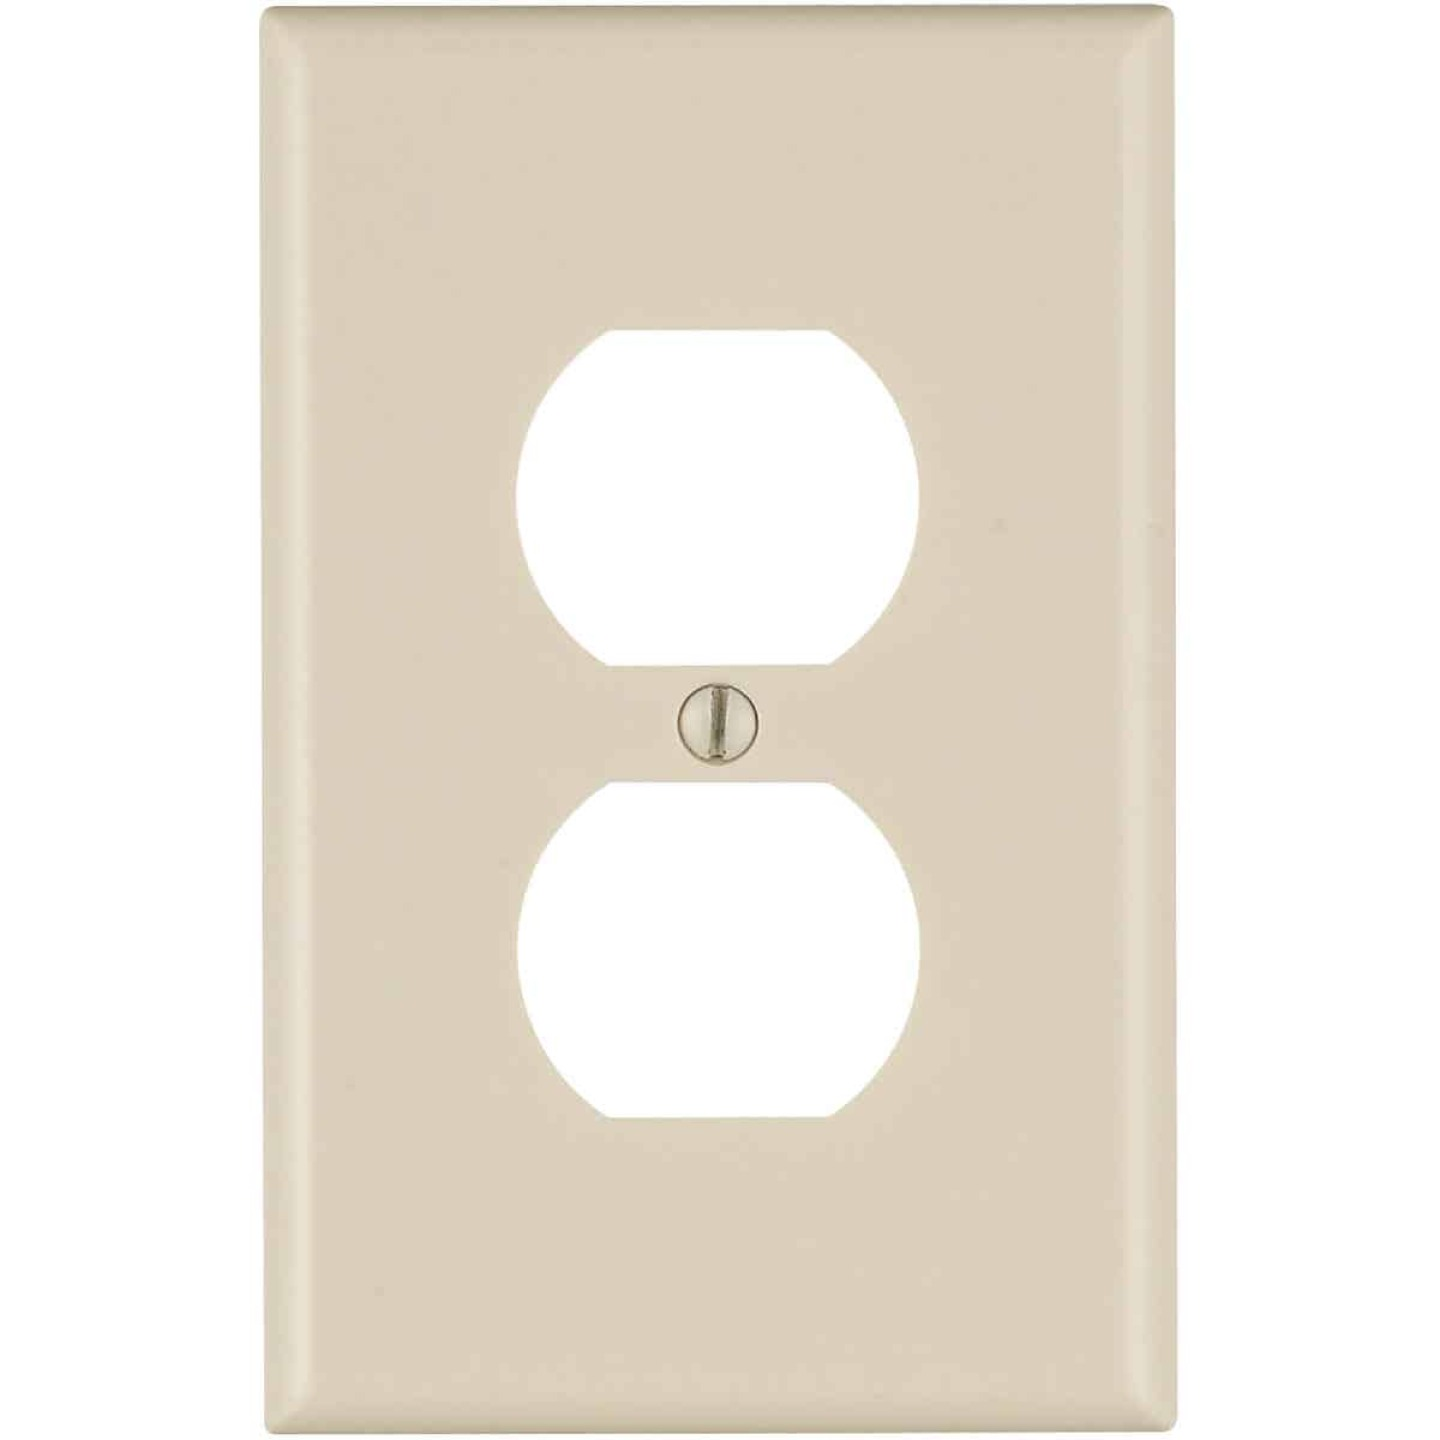 Leviton Mid-Way 1-Gang Smooth Plastic Outlet Wall Plate, Light Almond Image 1